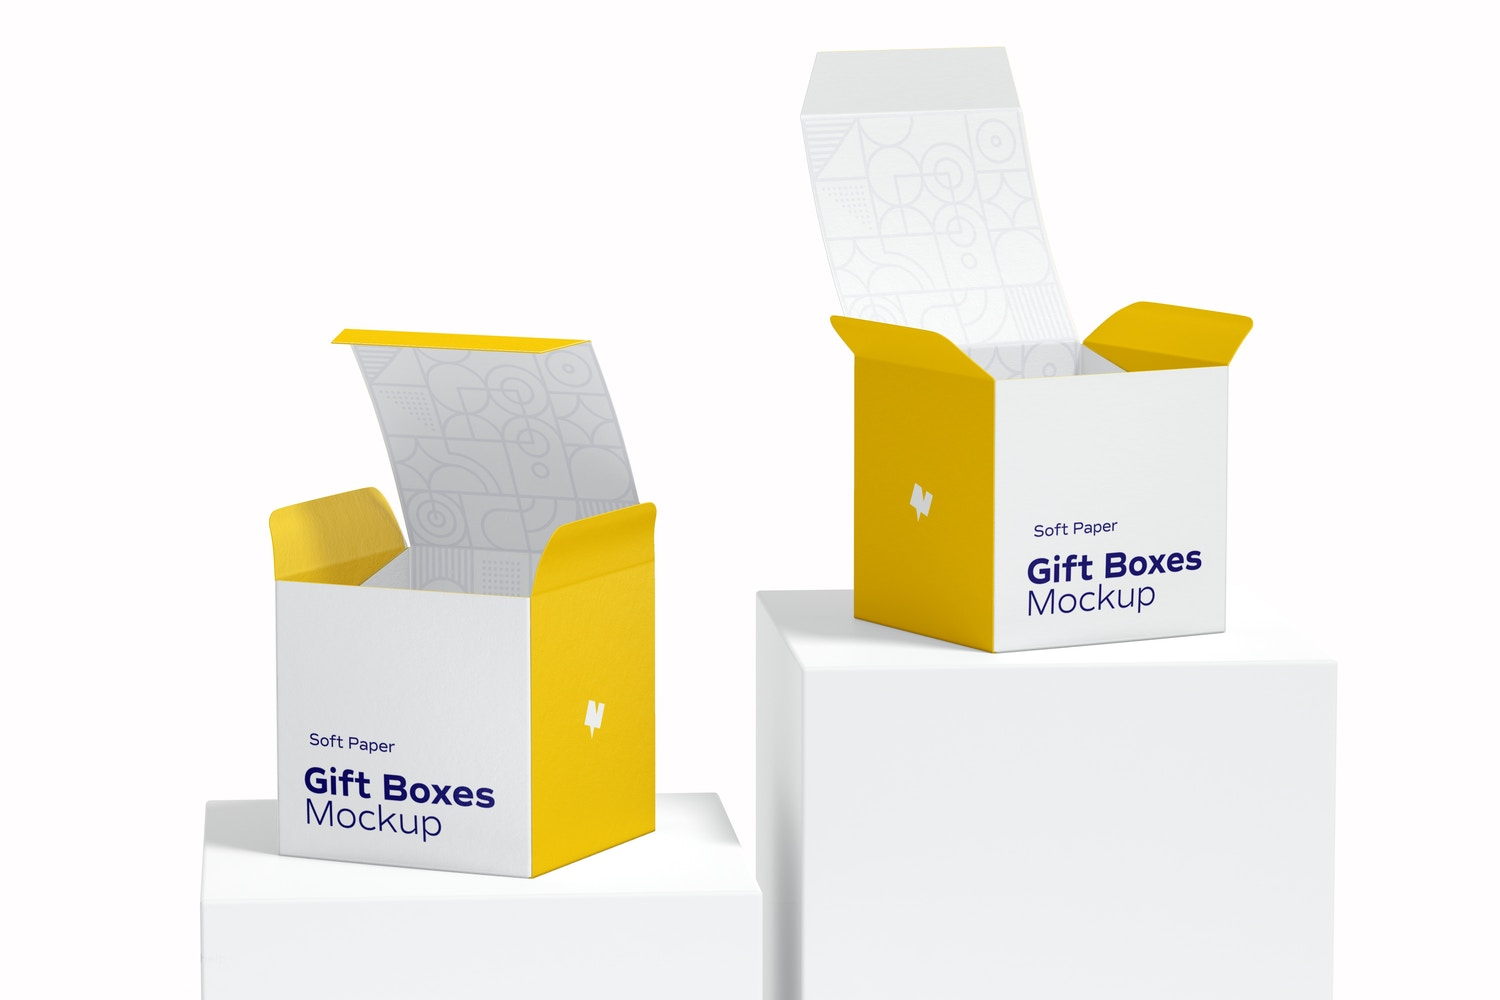 Soft Paper Gift Boxes Mockup, Front View